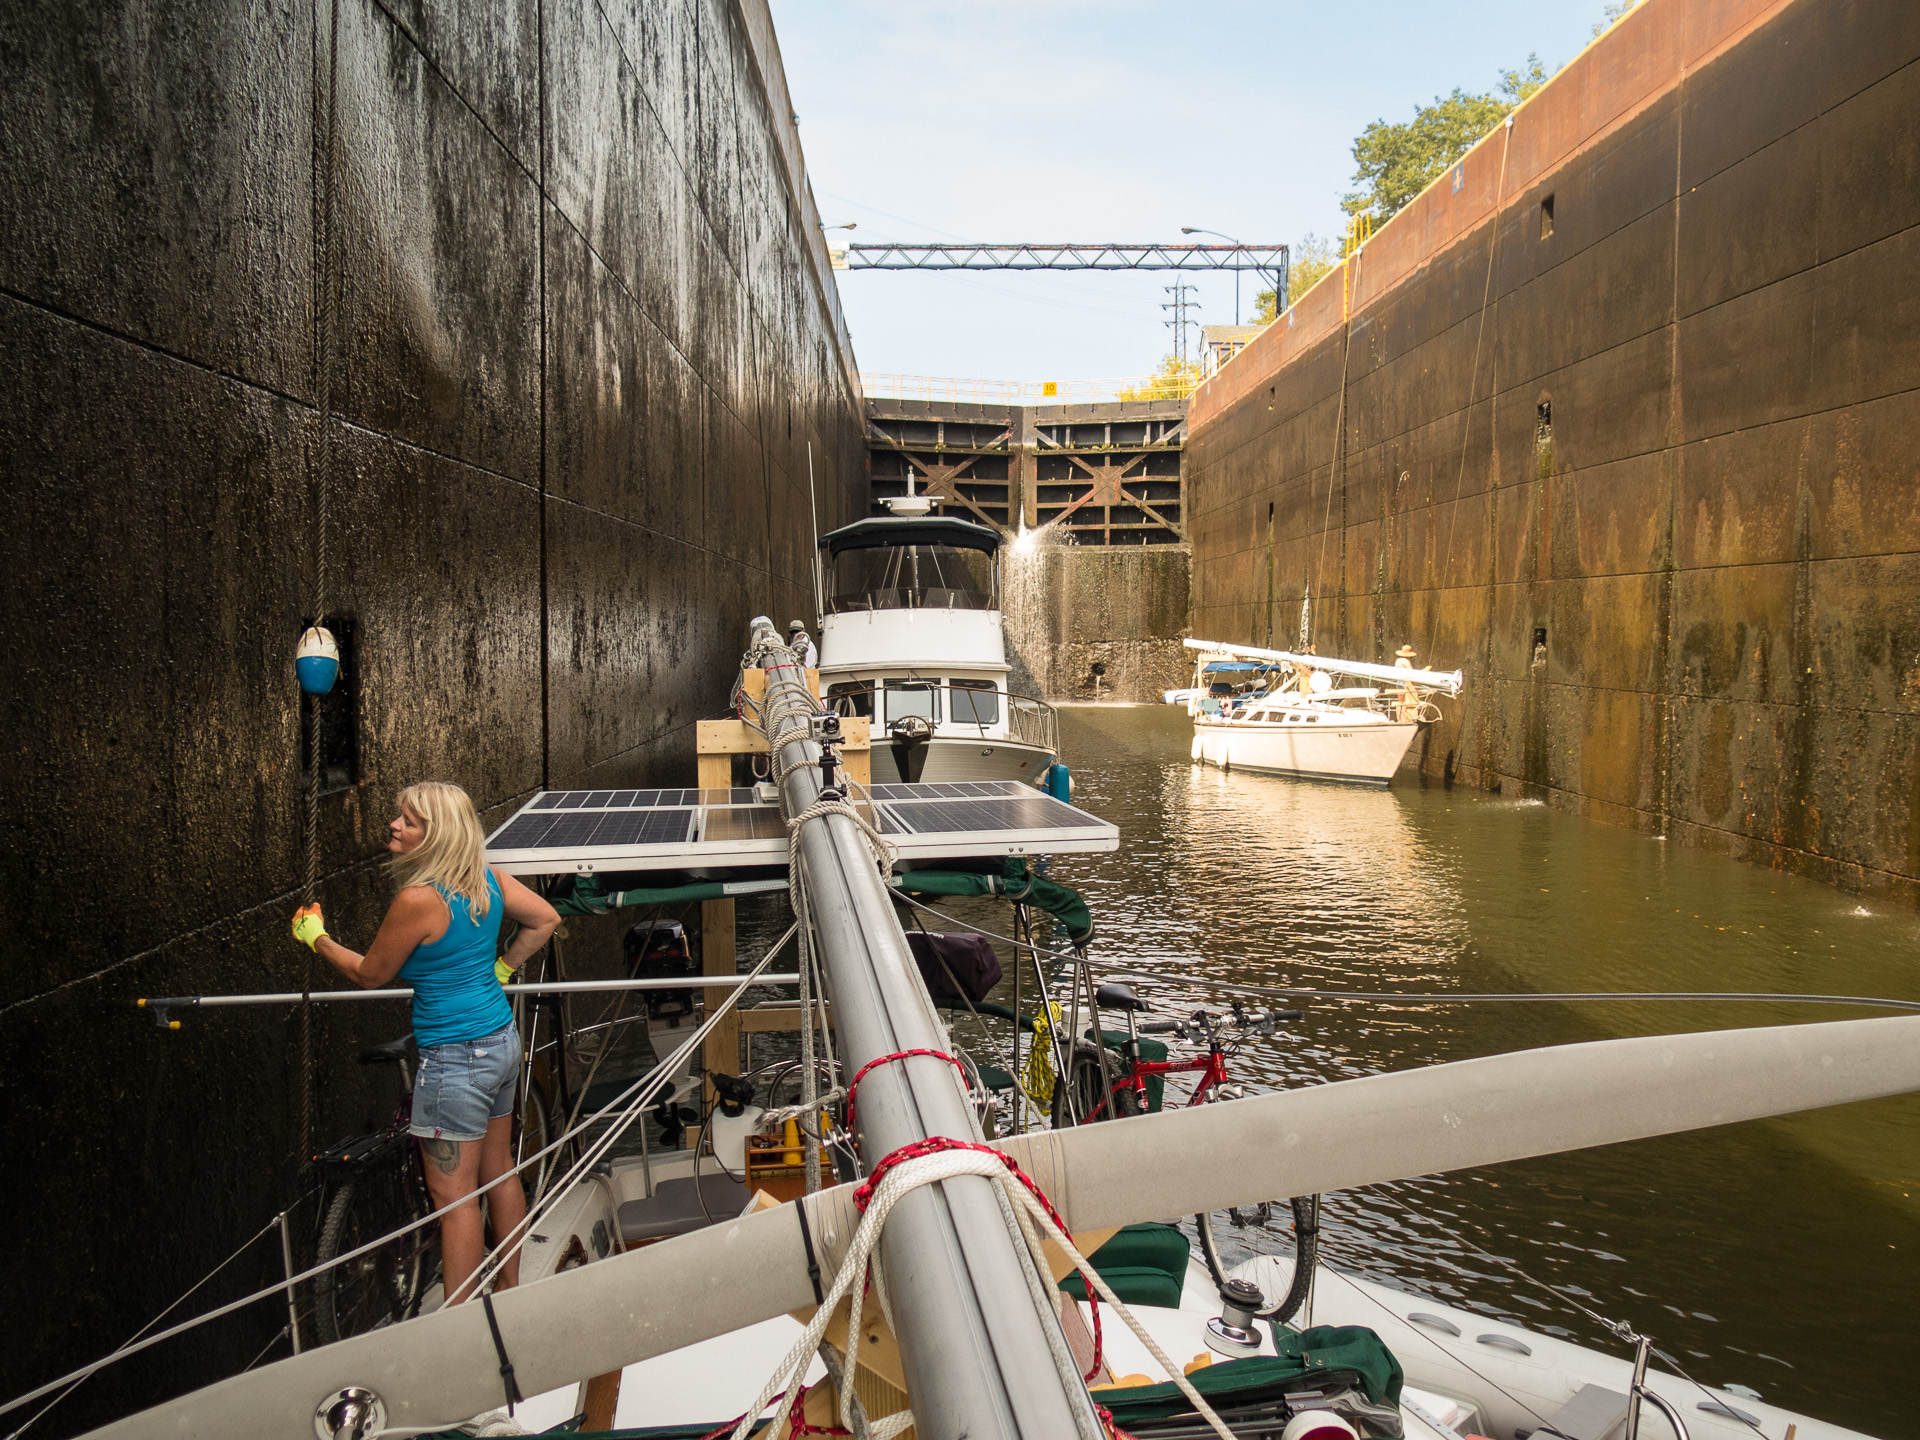 Going Through the Locks